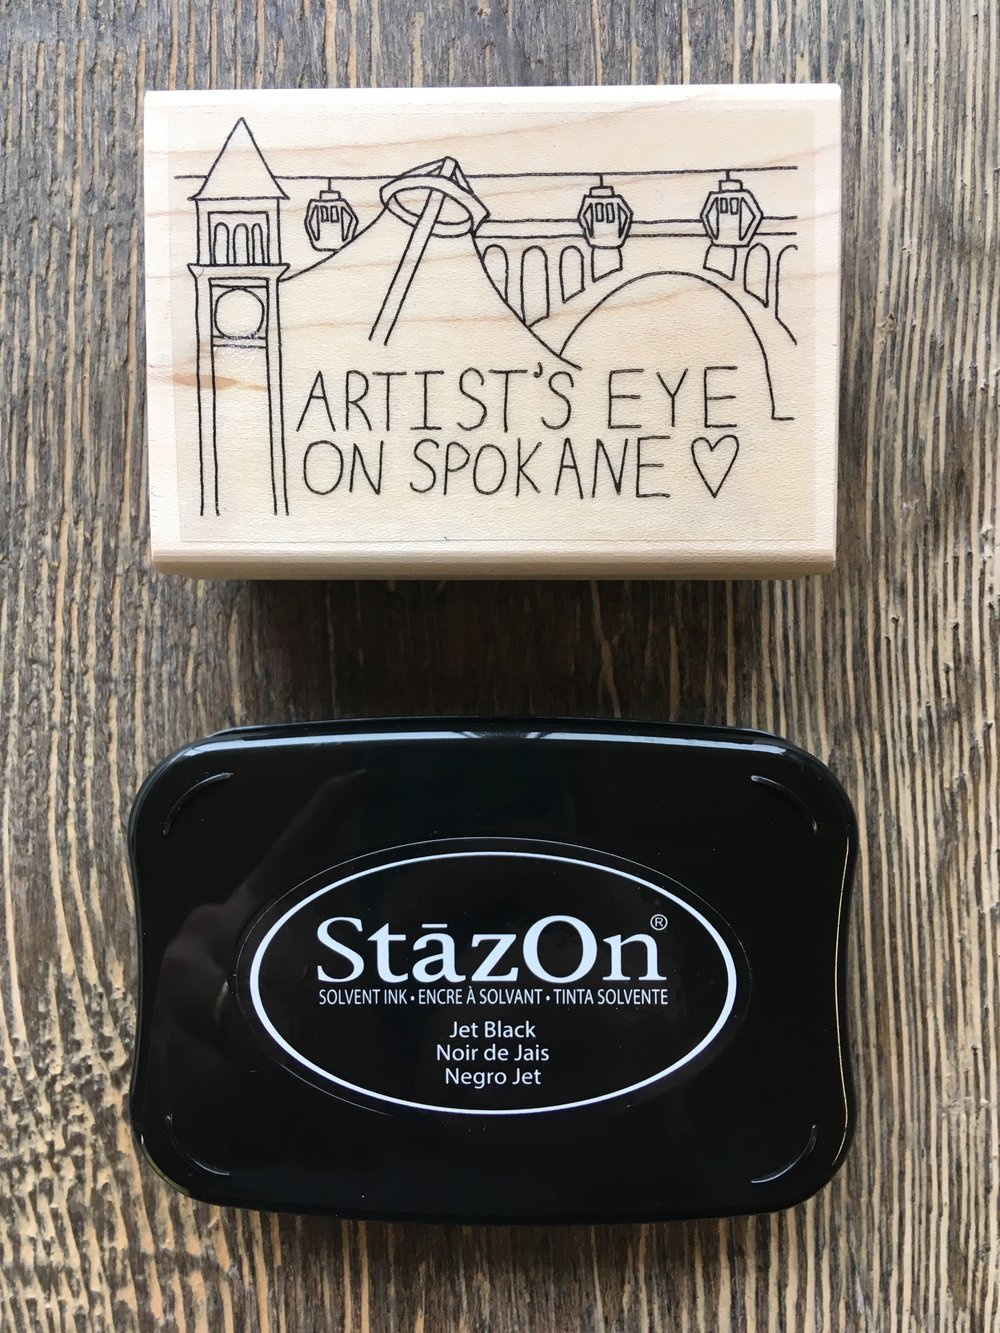 A custom Artist's Eye on Spokane stamp! We blew past that stretch goal ($5,500) in one day, so now everyone who buys a book through the Kickstarter will receive a stamp on the inside of their book!